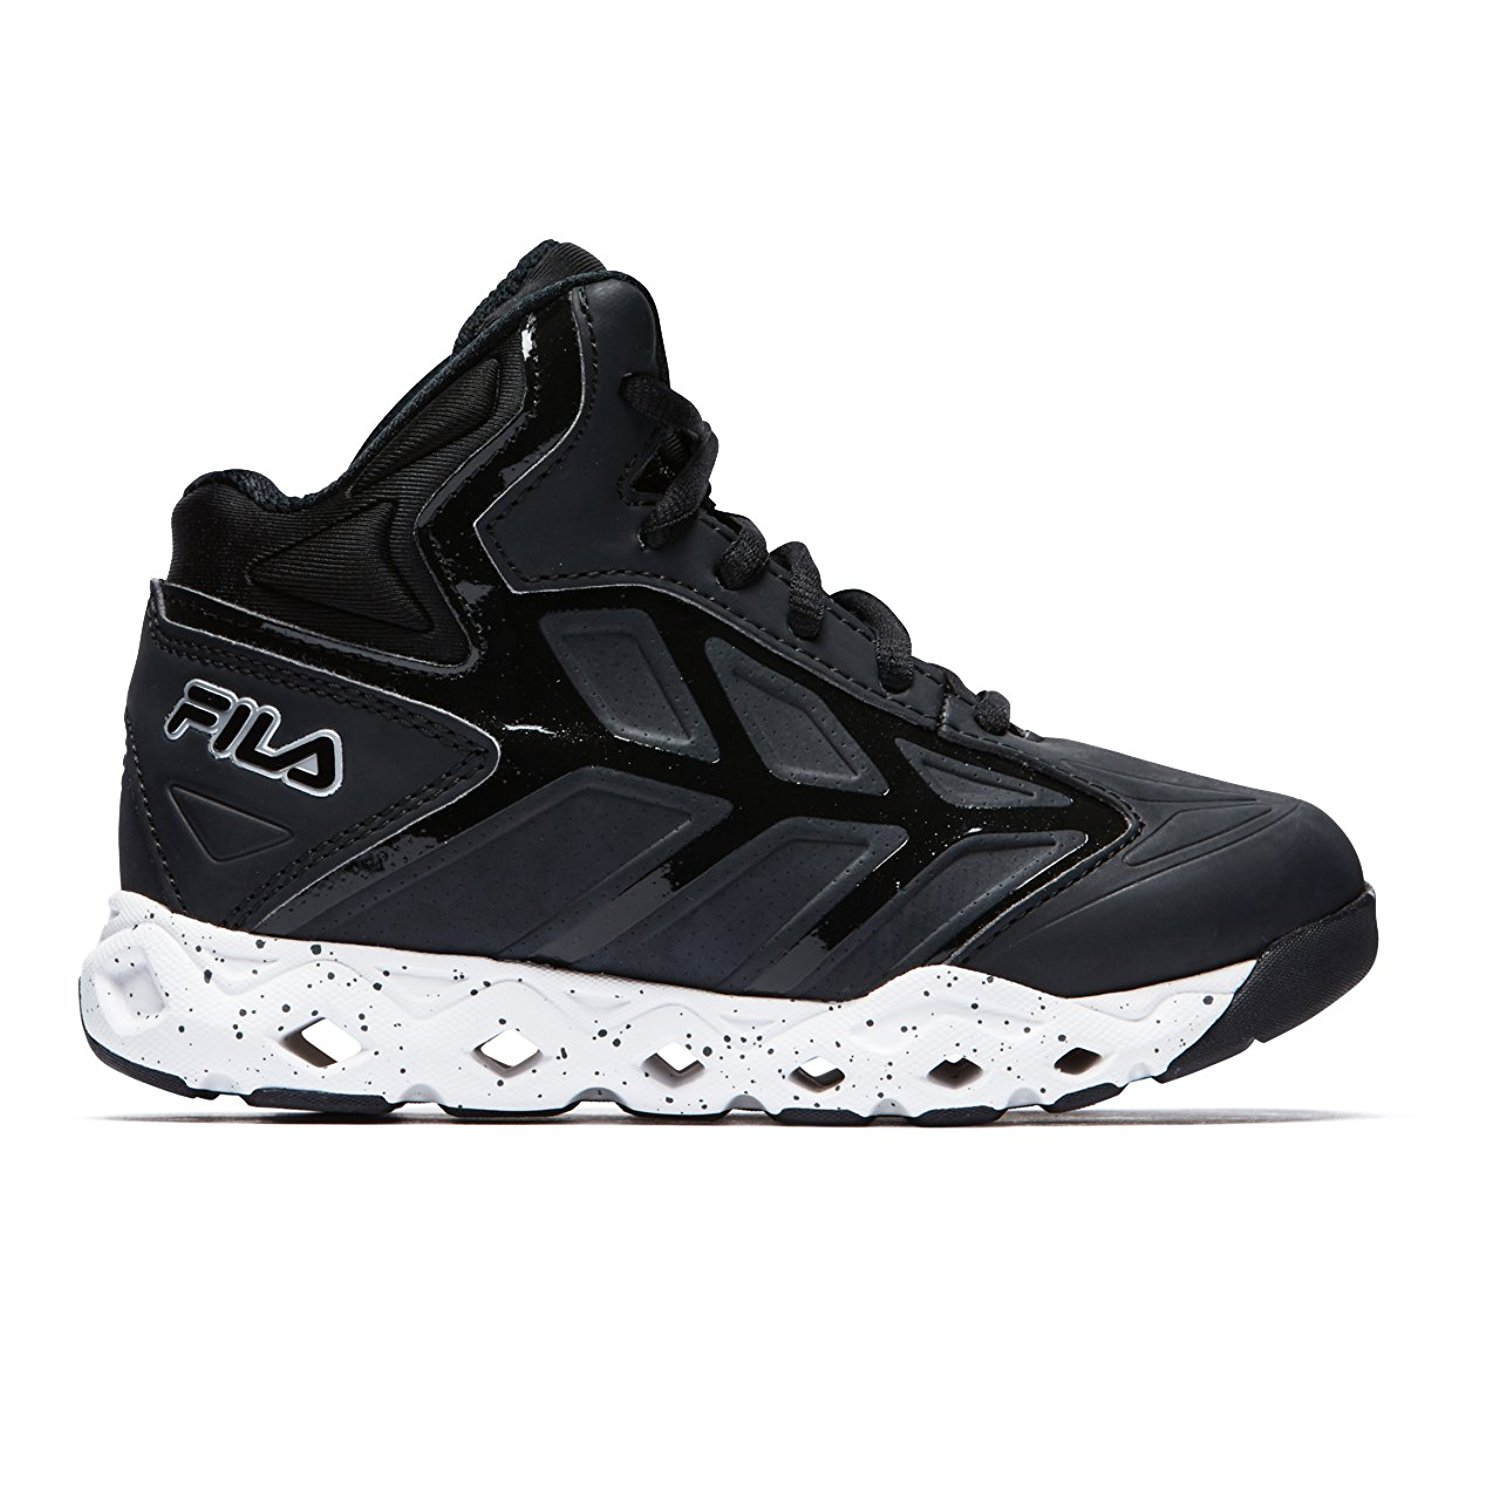 6d8d206f2209 fila white high ankle basketball shoes Sale